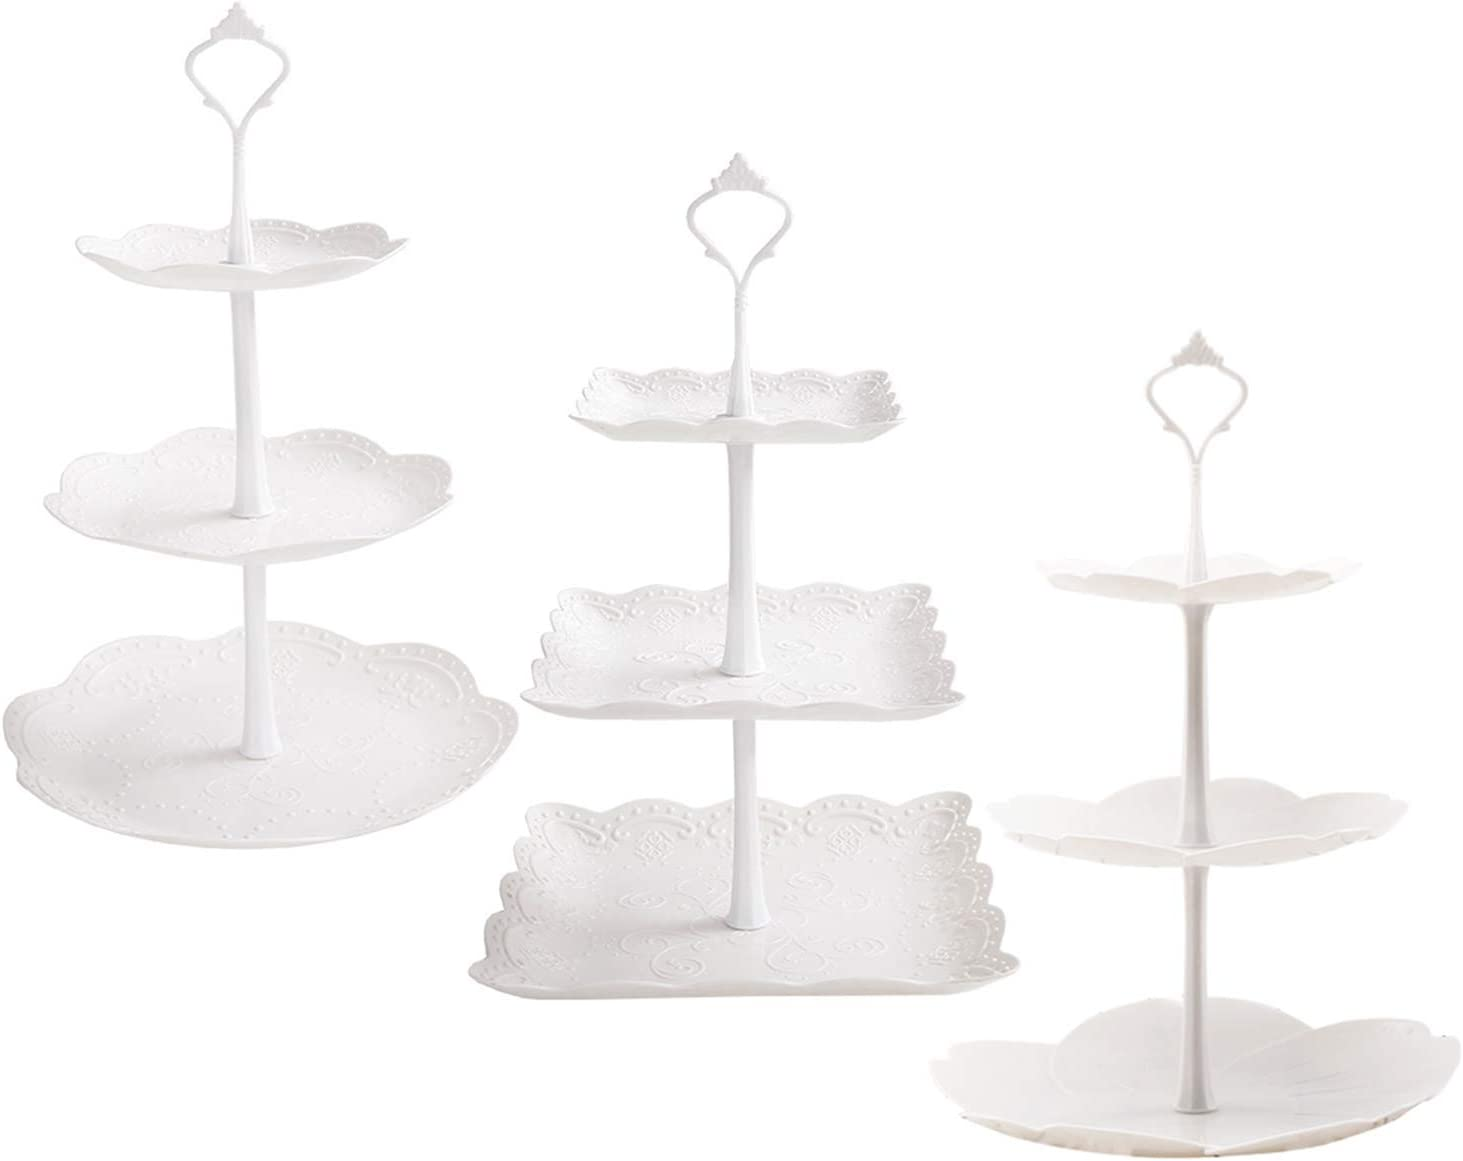 Tosnail 3 Pack 3 Tiers White Plastic Cupcake Stand Dessert Stand Tiered Serving Trays - Round, Square, Flower